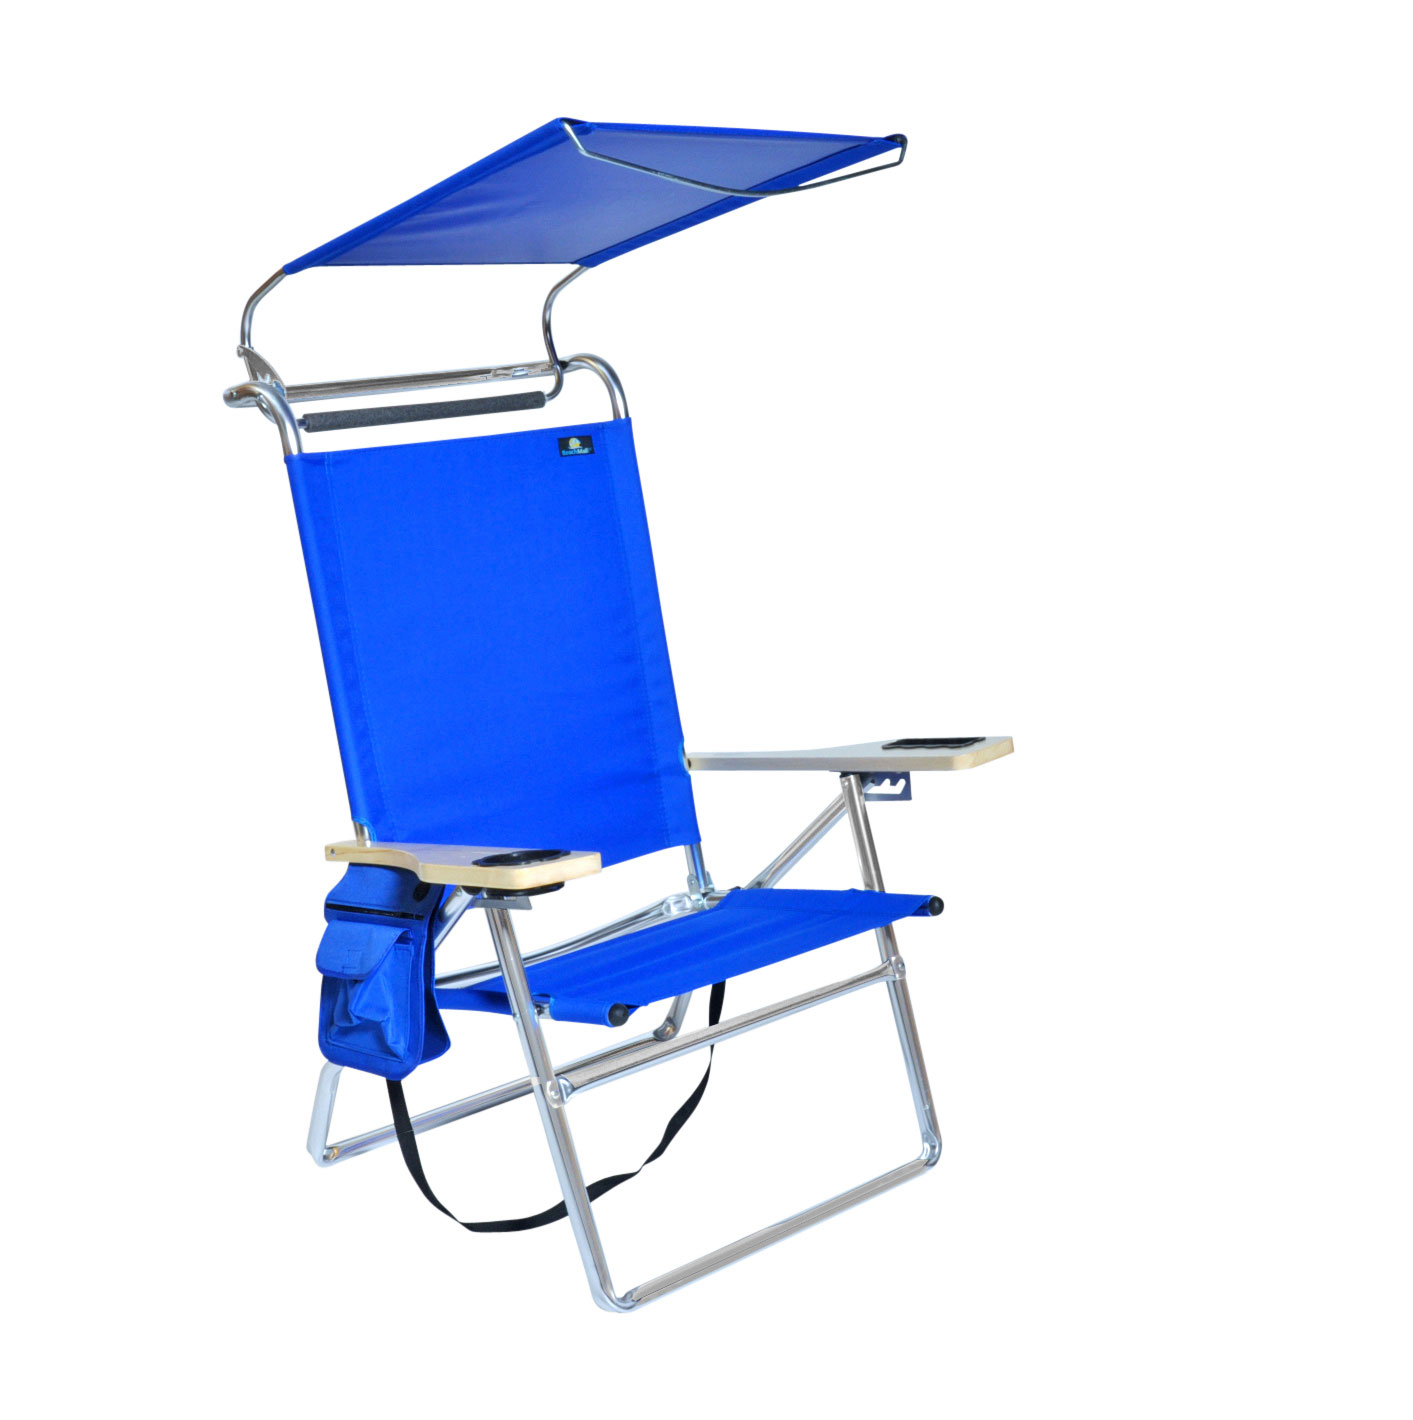 Deluxe 4 position Aluminum Beach Chair w Canopy  Storage